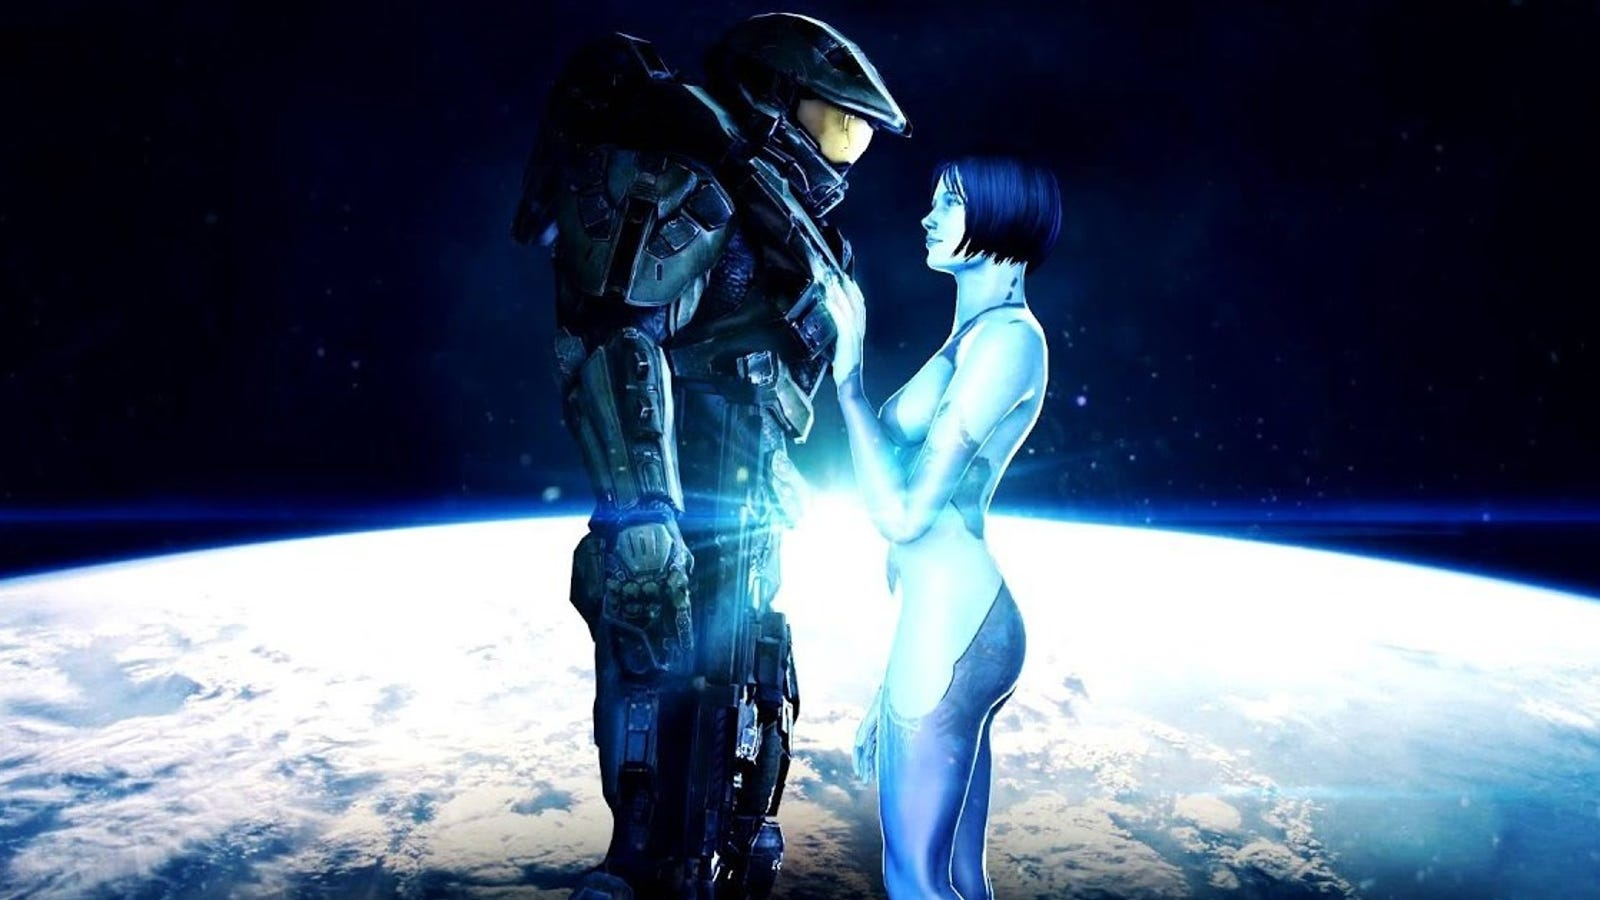 No, Master Chief's Suit Does Not Jerk Him Off